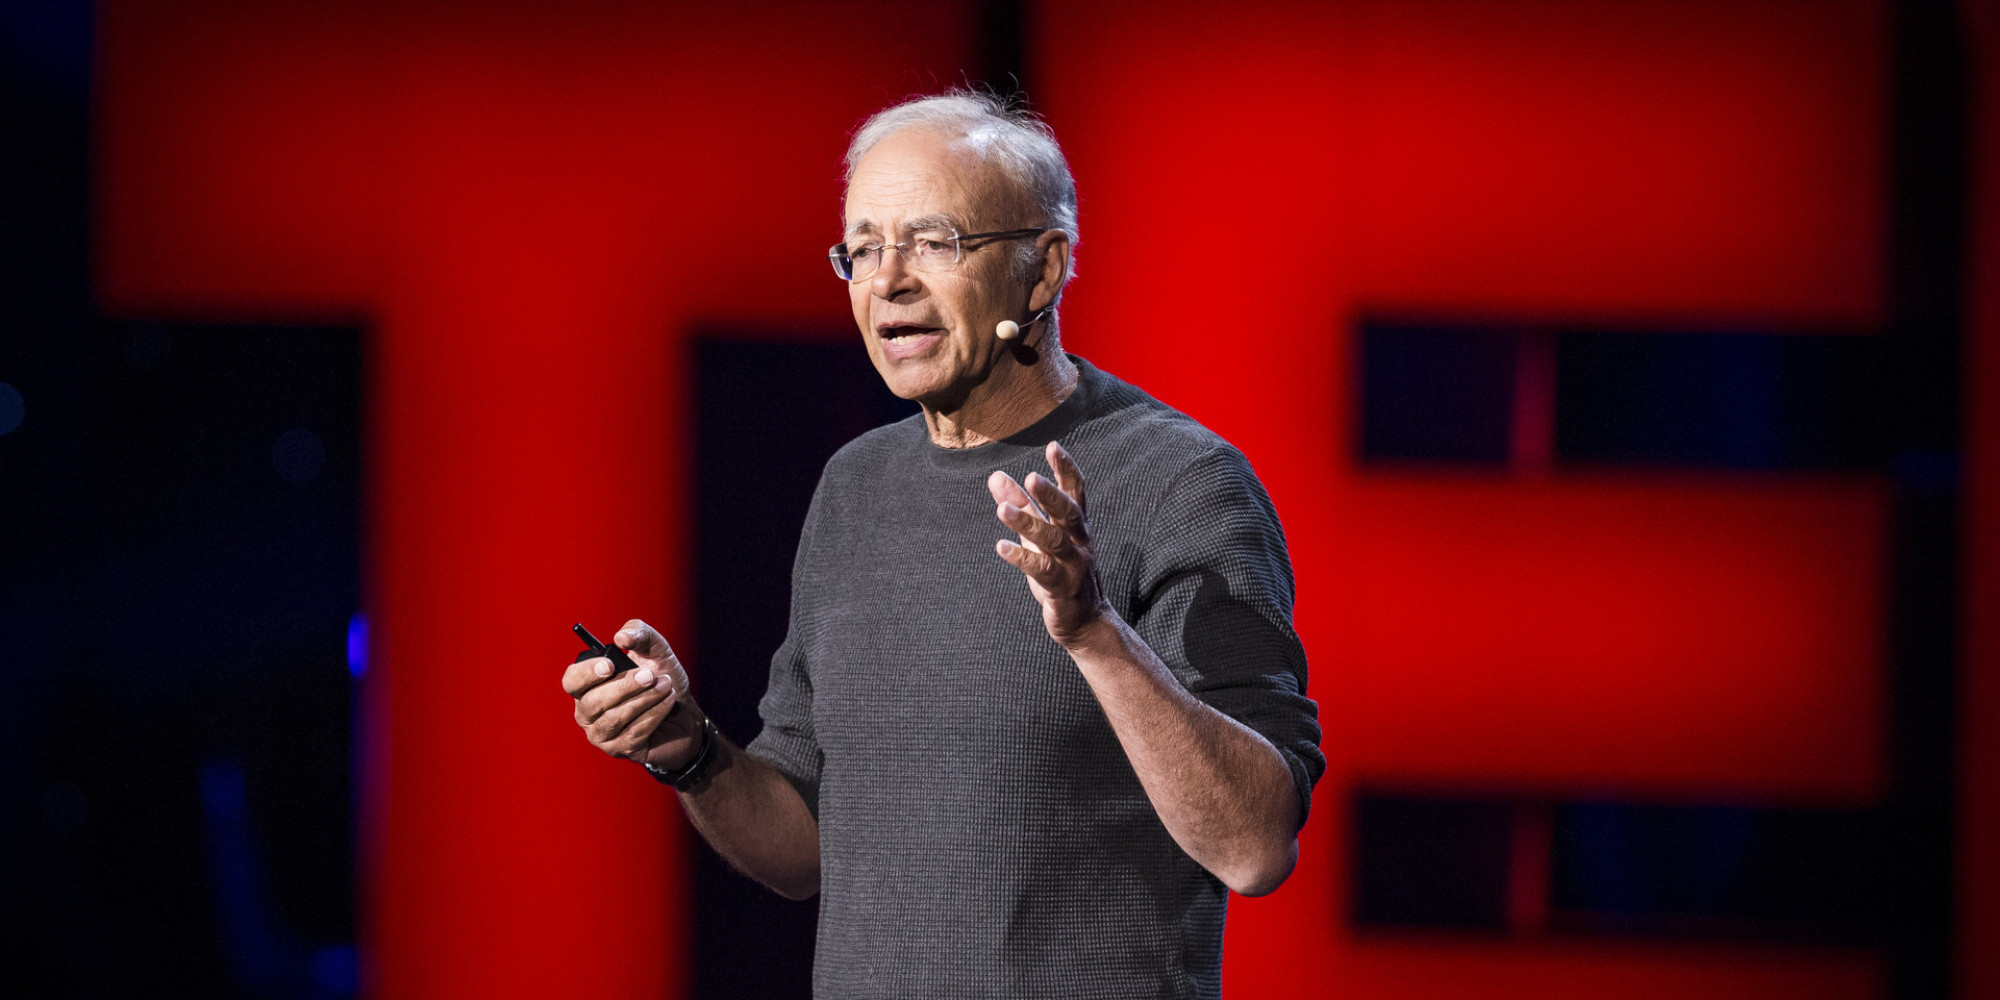 peter singer rich and poor essays studymode peter singer rich and poor essay